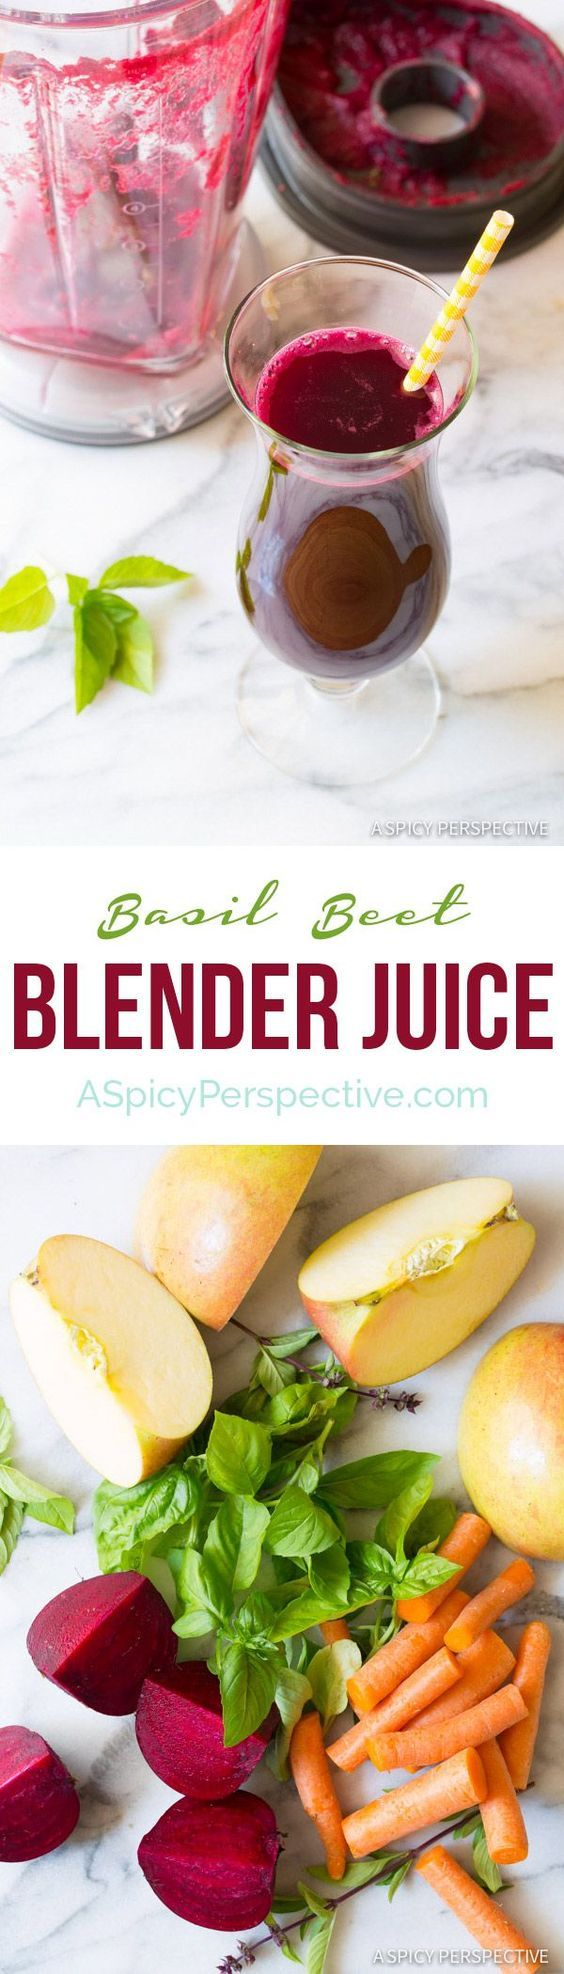 Fresh raw and vibrant Basil Beet Juice Recipe! 5 ingredients and a whole lot of goodness go into each glass. Make this healthy juice recipe without a juicer